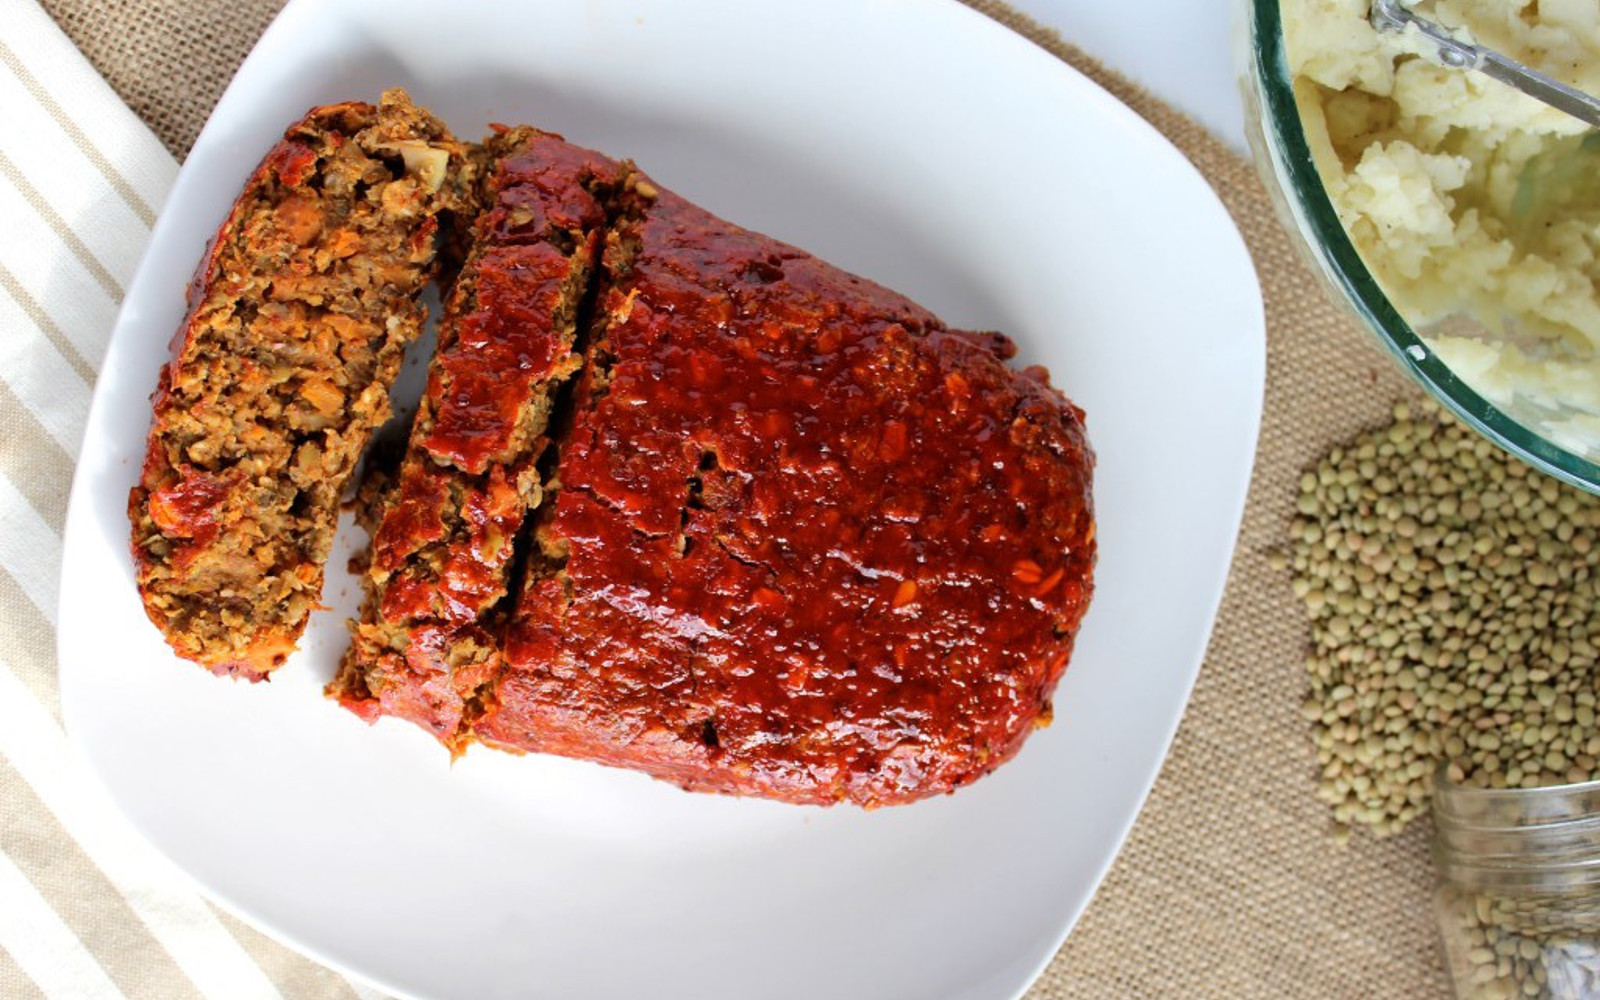 Vegan Maple-Glazed Mushroom and Lentil Loaf